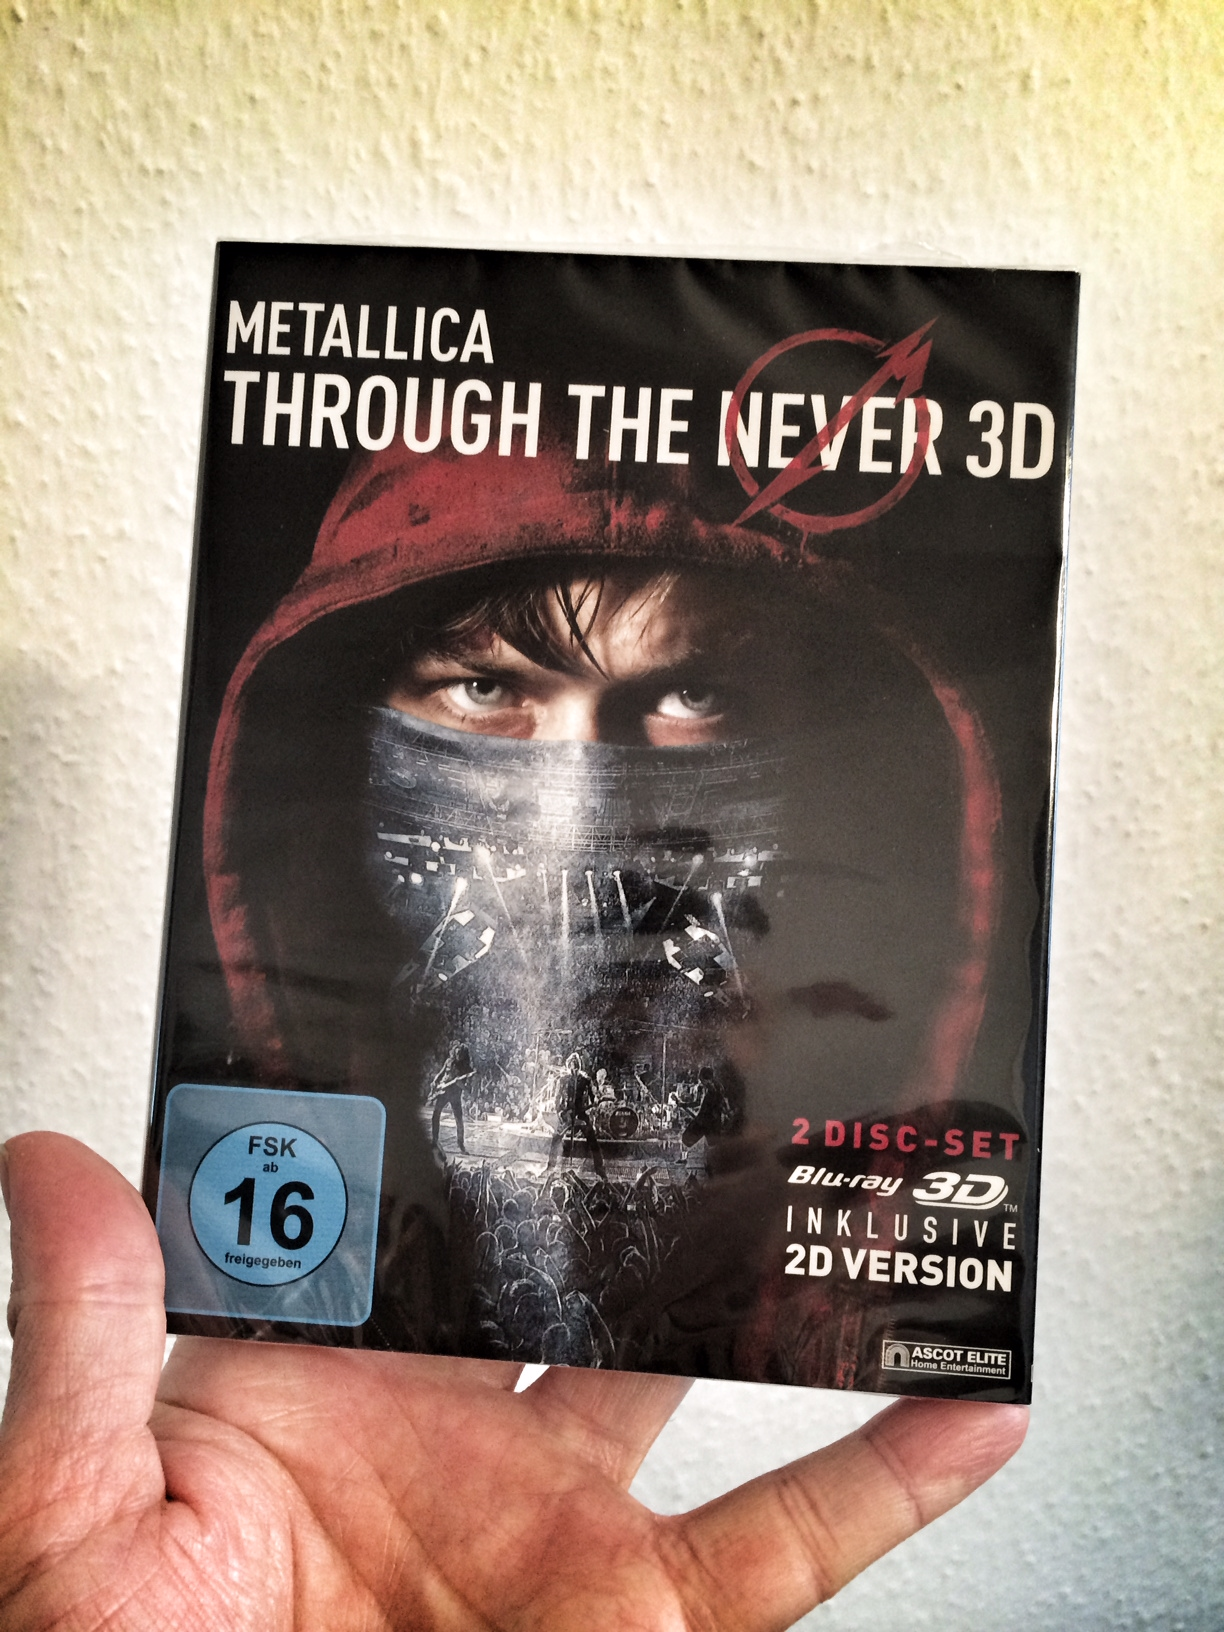 METALLICA: Through The Never-Bluray-Verlosung